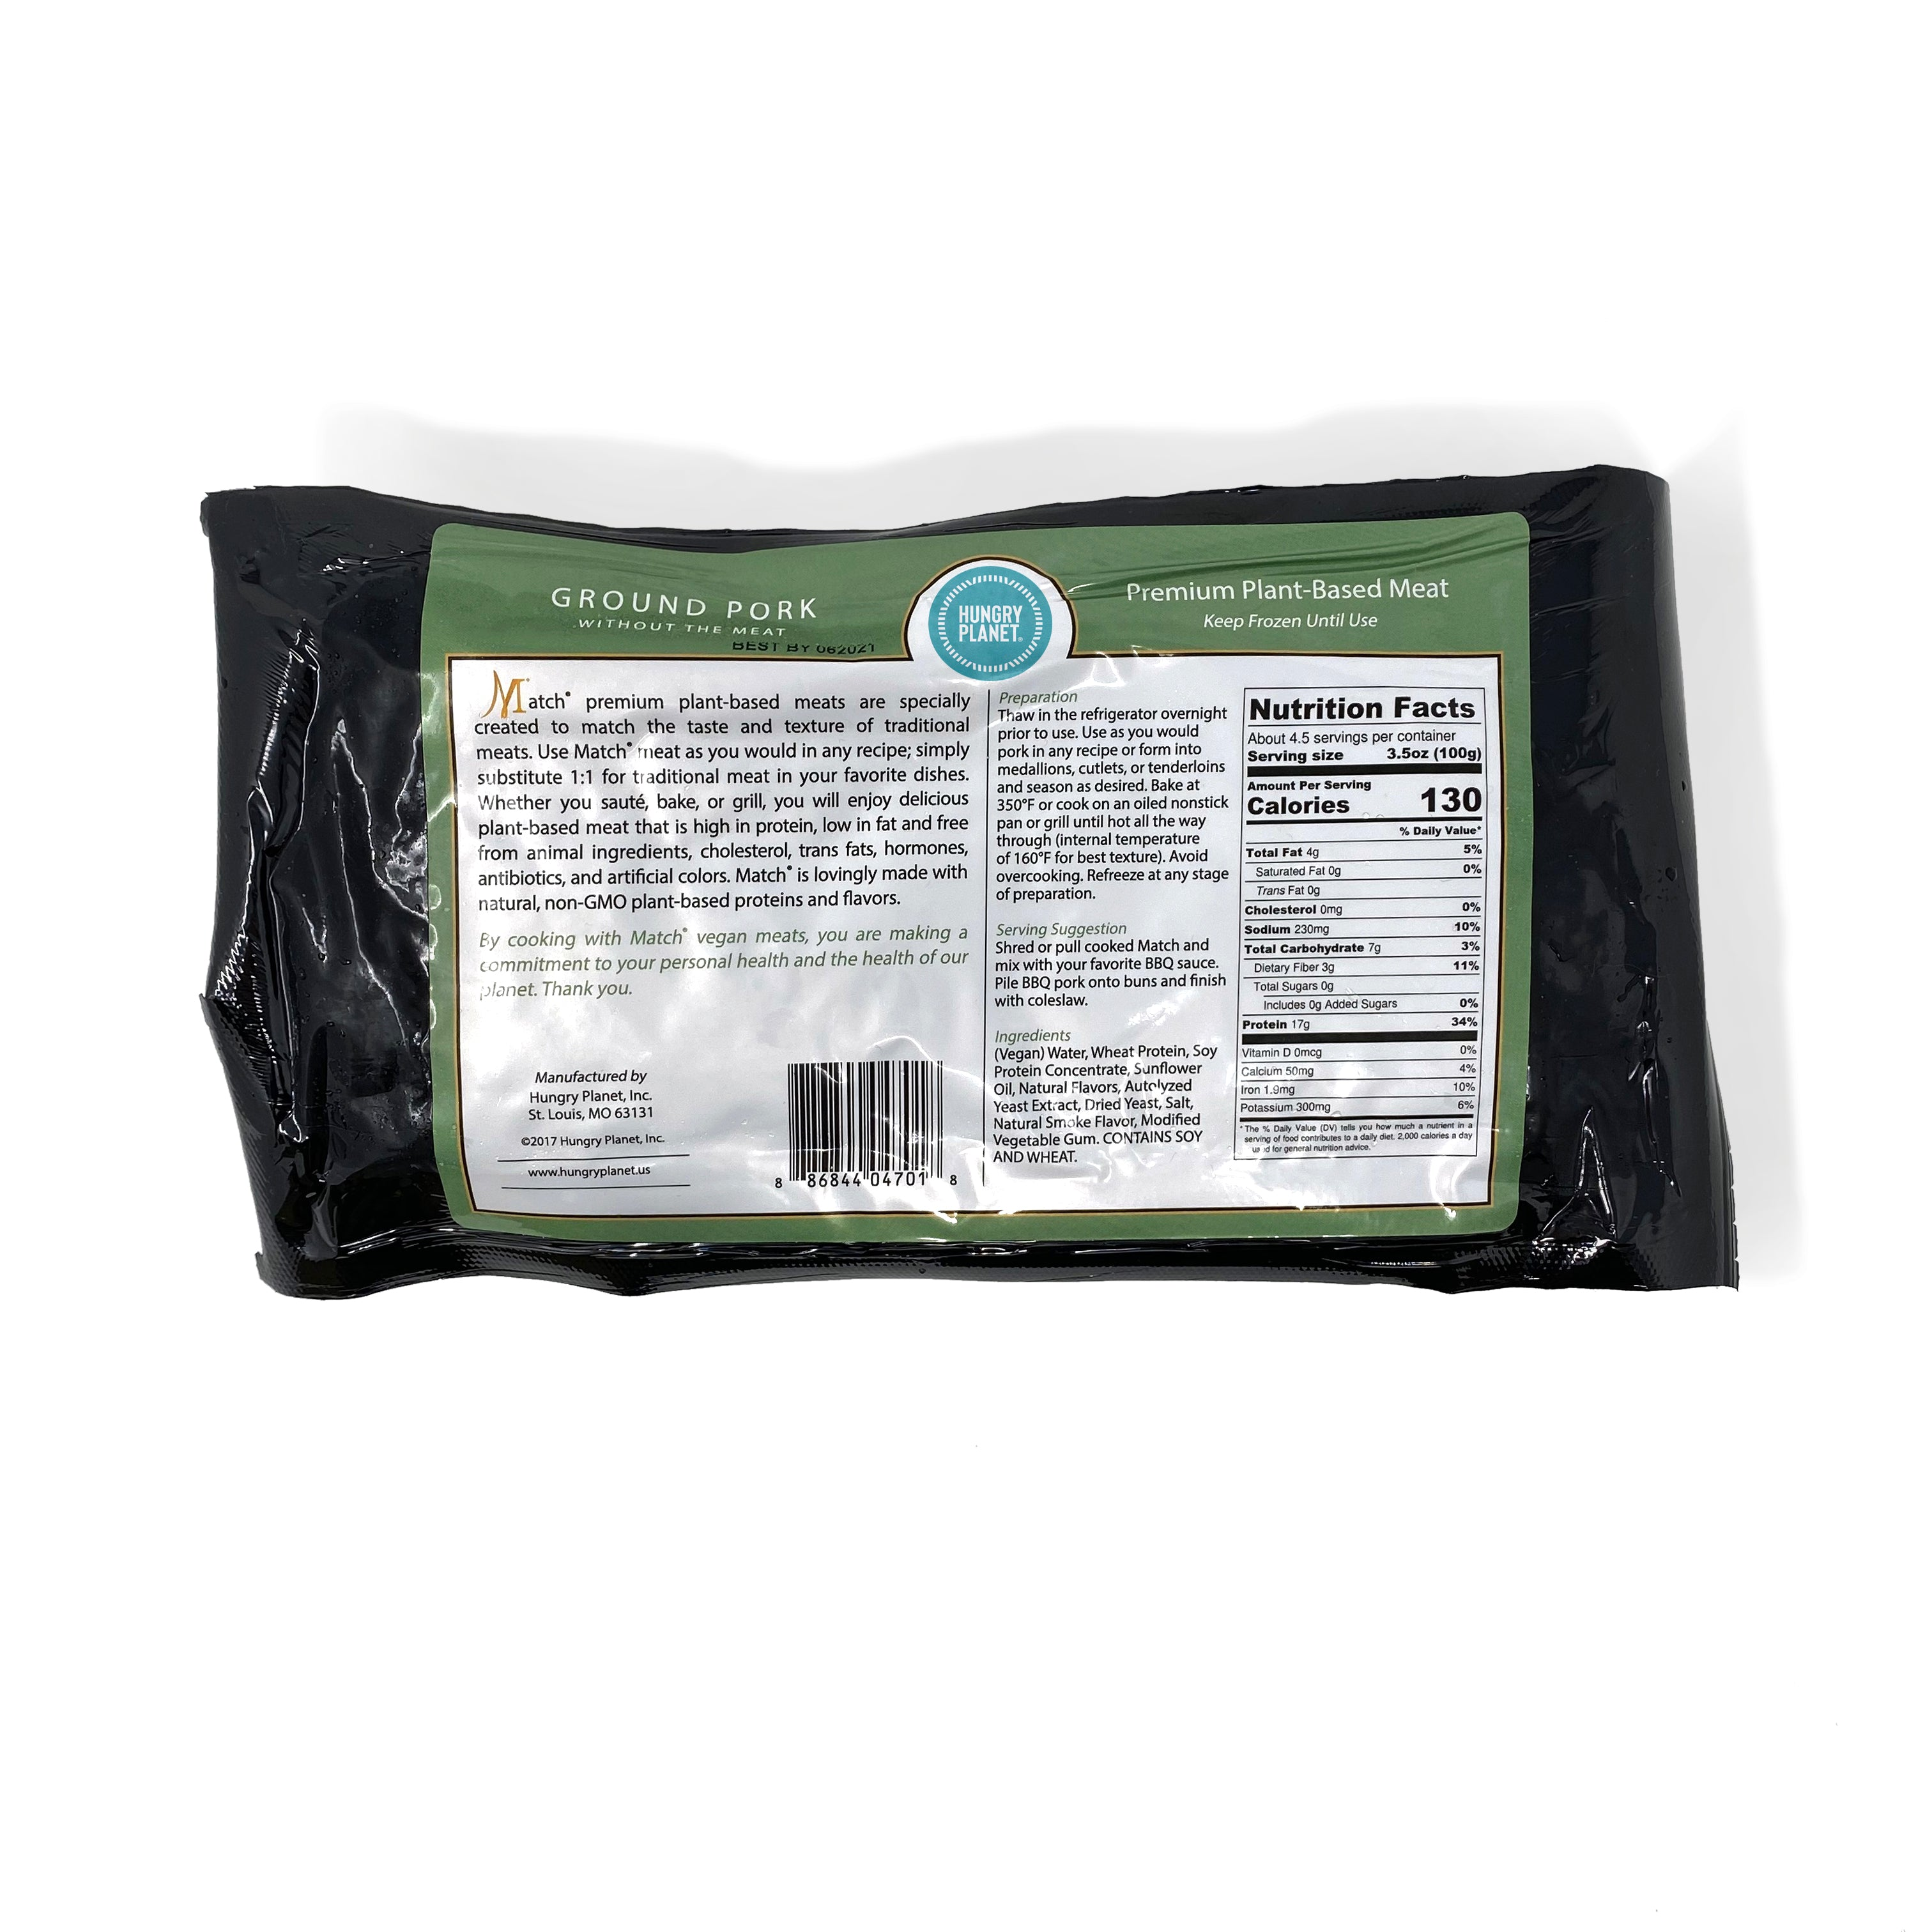 Hungry Planet Pork<sup>™</sup> Ground<span>100% Plant-Based, 1 lb chubs</span> (Pack of 12 chubs)